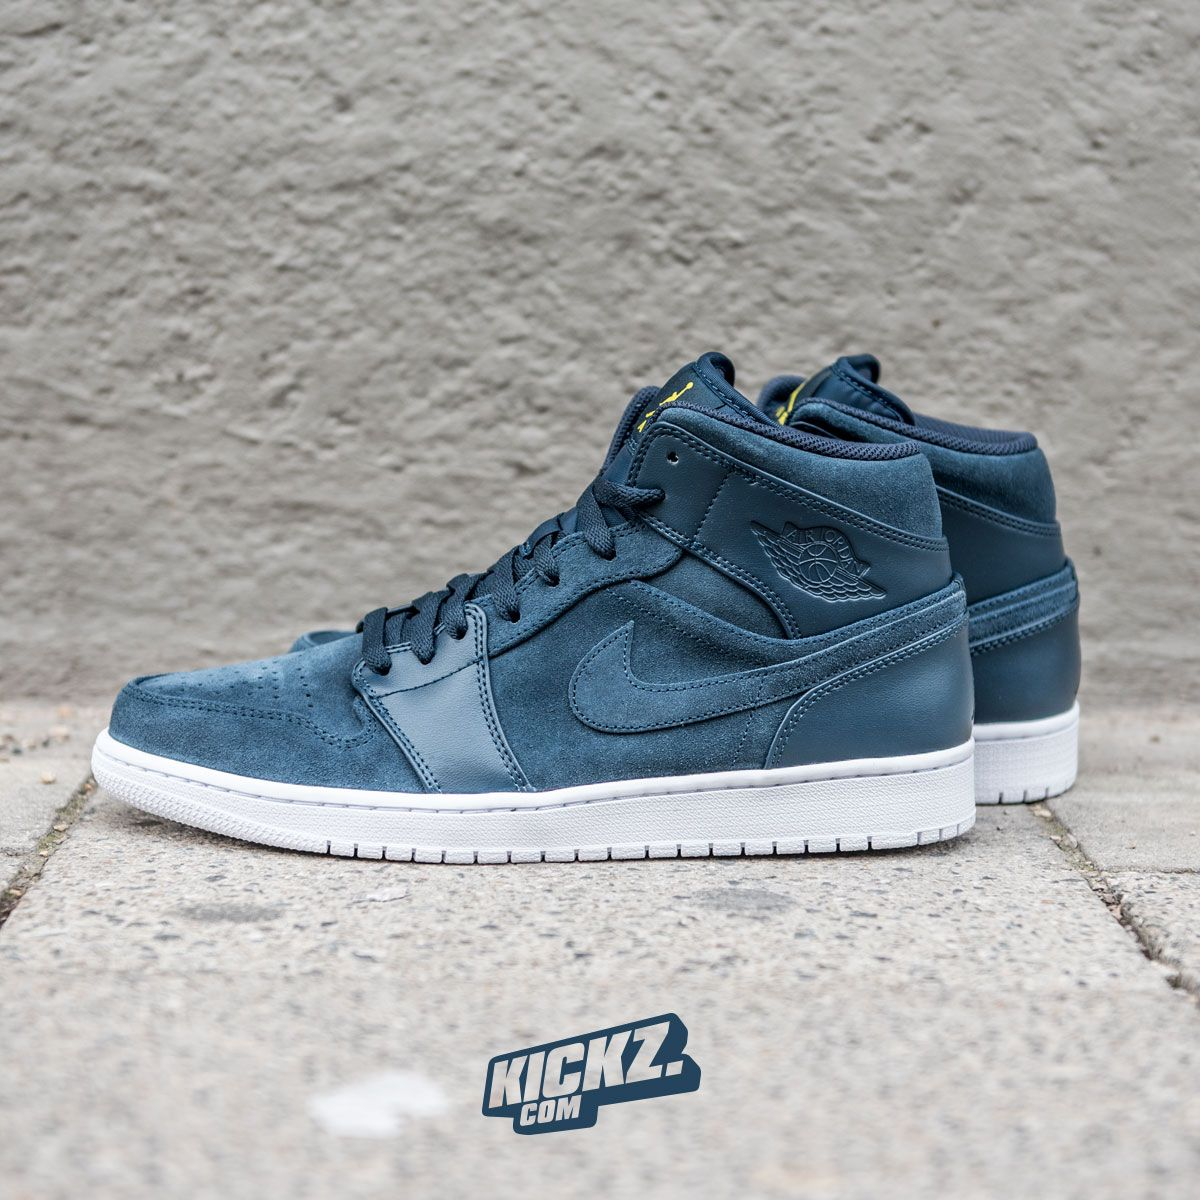 43bf76d216f Air Jordan 1 Mid (armory navy). The shoe that started the Jordan craze in a  new colorway and suede upper.  AirJordan1  AirJordan  kickzcom